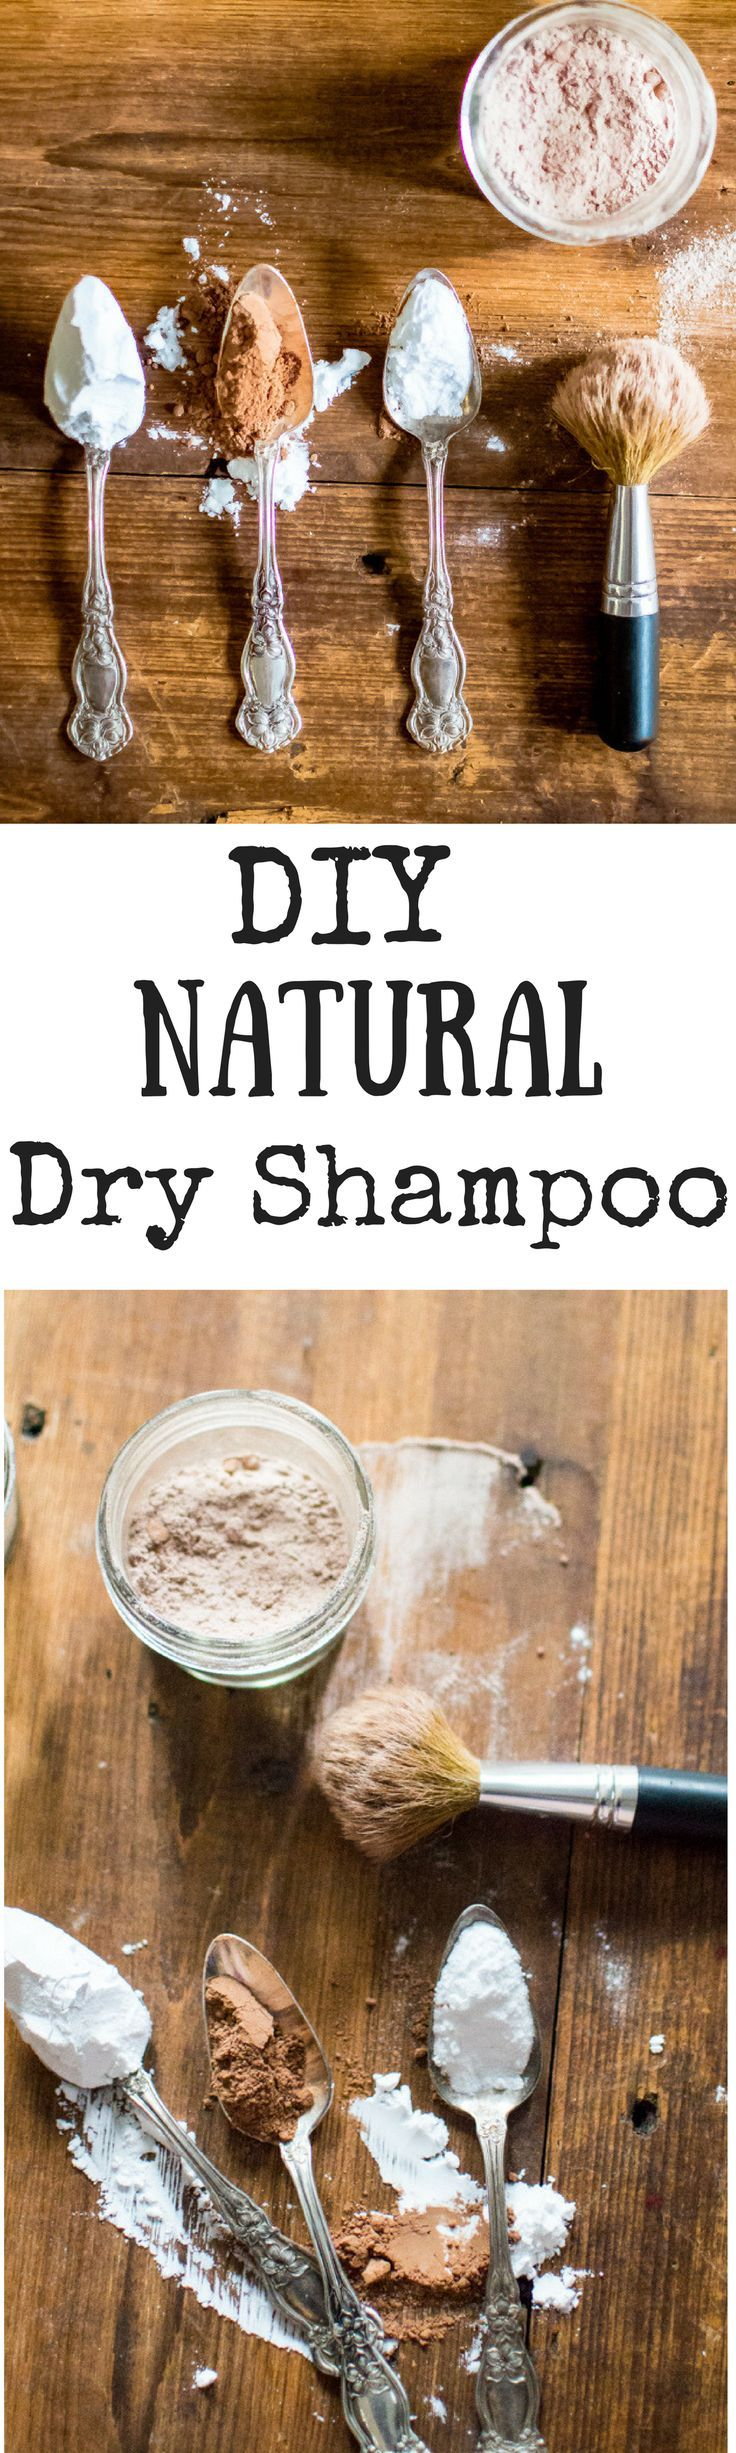 I don't know about you, but next to coffee and leggings, dry shampoo might j...